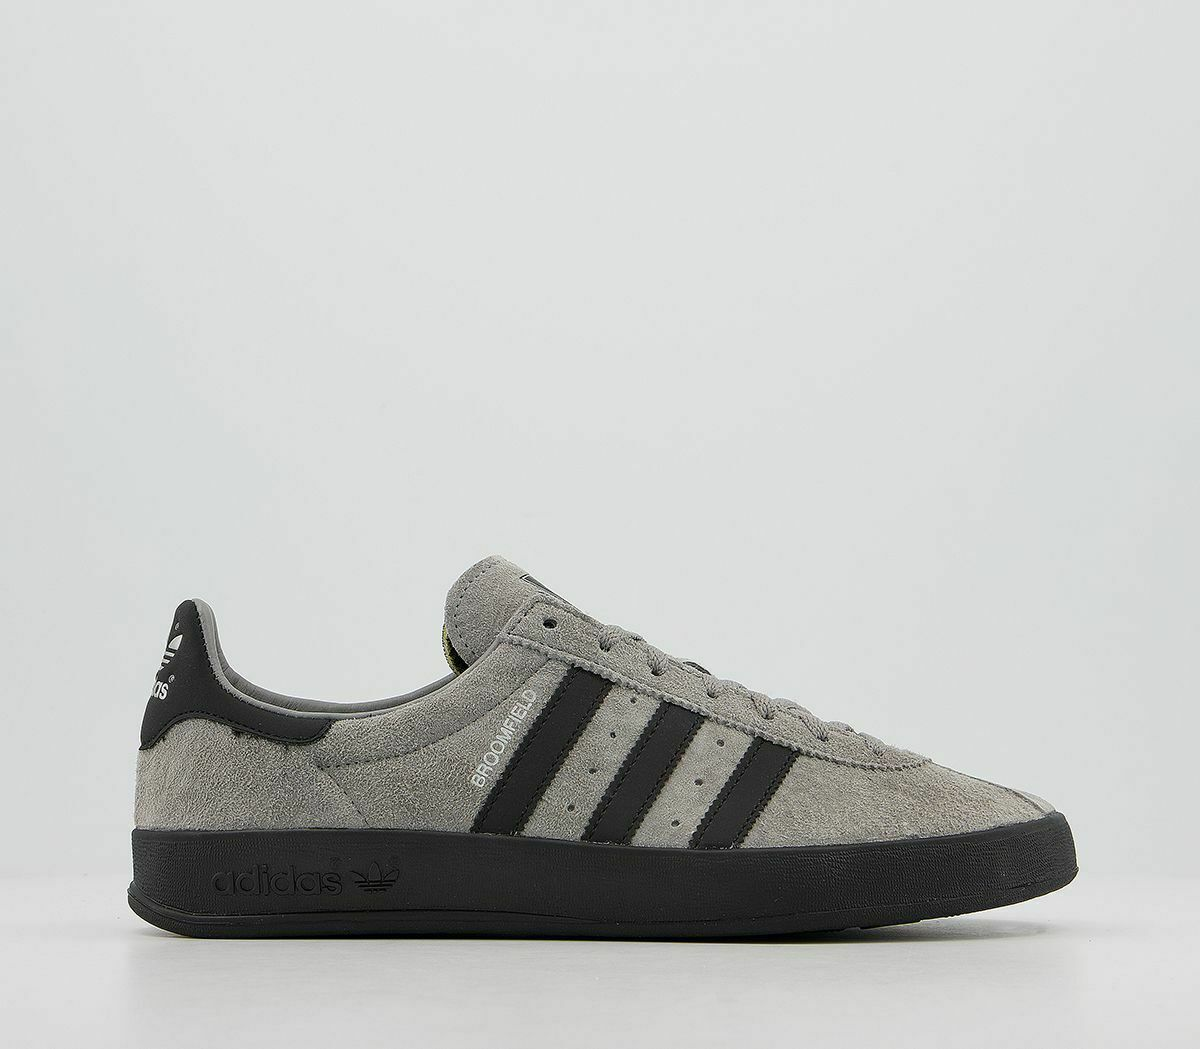 Adidas Broomfield Trainers Solid Grey Black Trainers Shoes